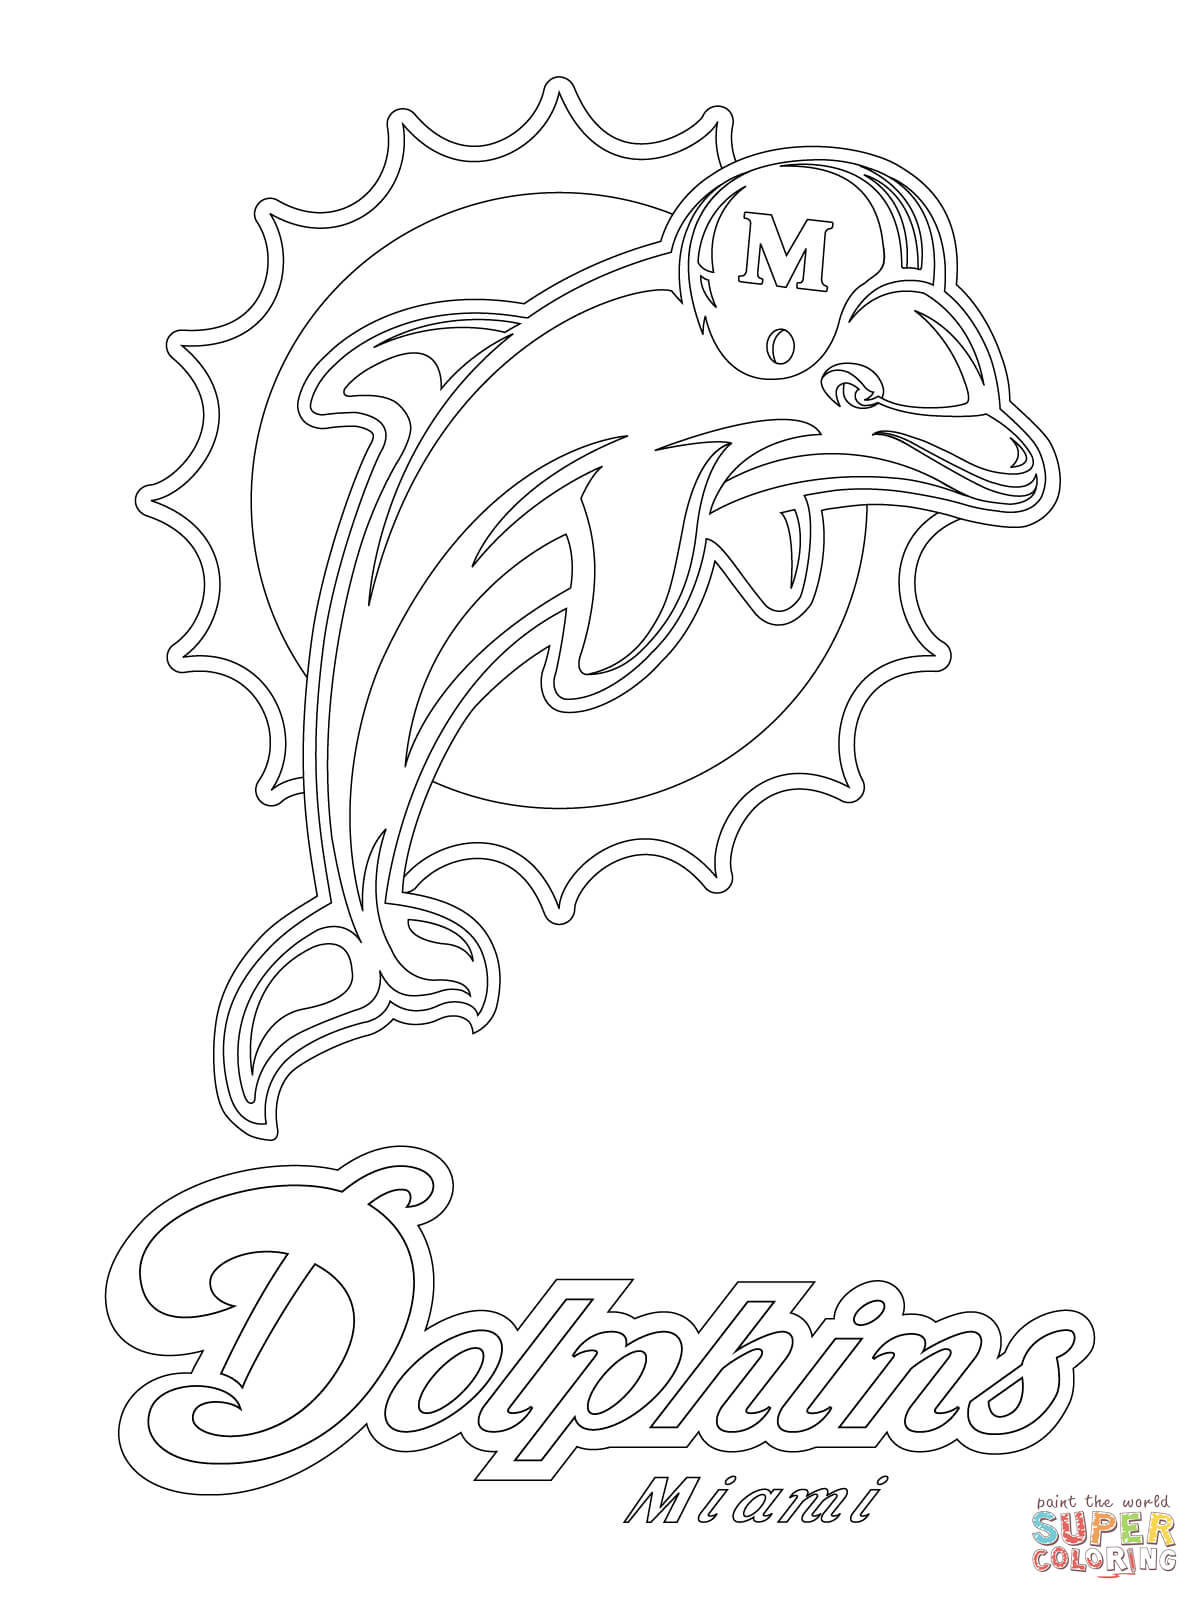 Miami Dolphins Logo Coloring Page